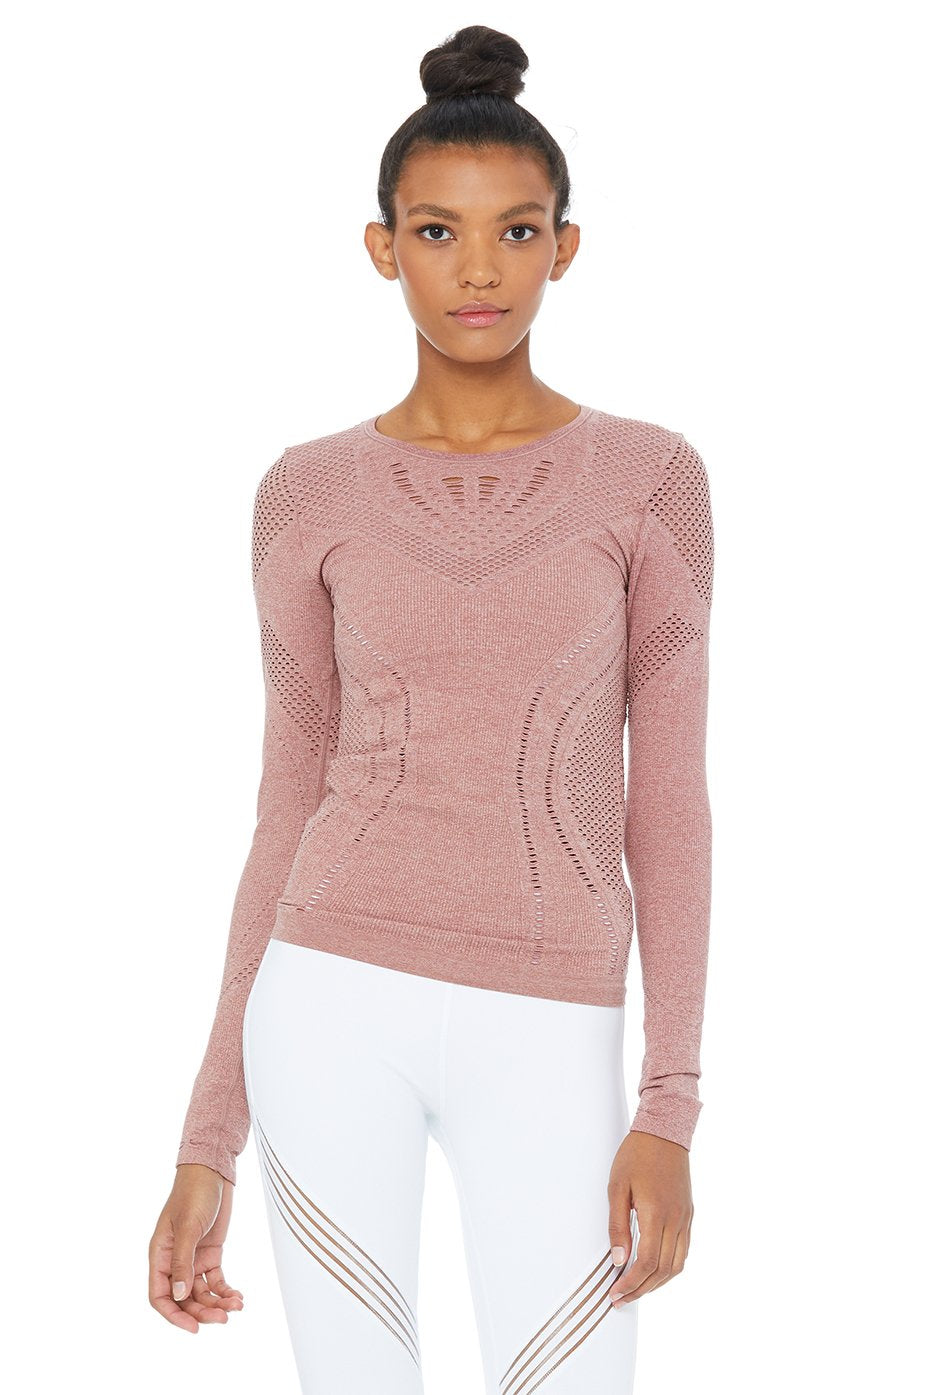 Alo Yoga Lark Long Sleeve Top - Rosewater Heather